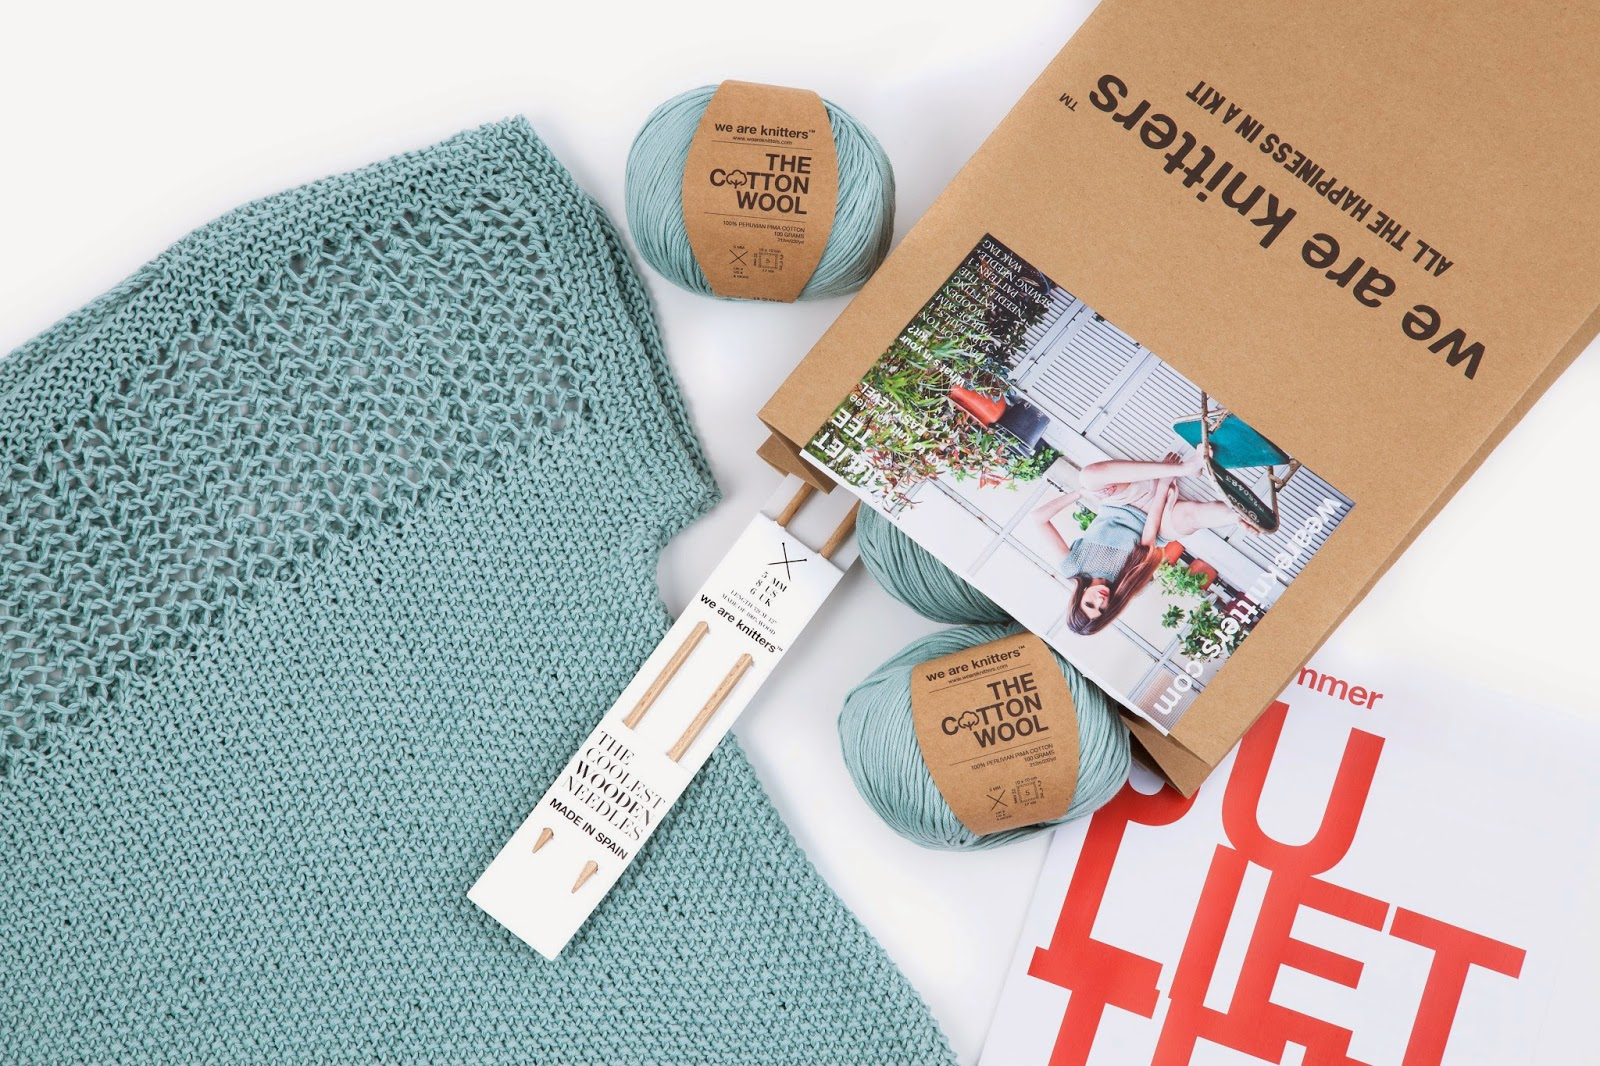 Kit de punto Juliet tee de We are knitters